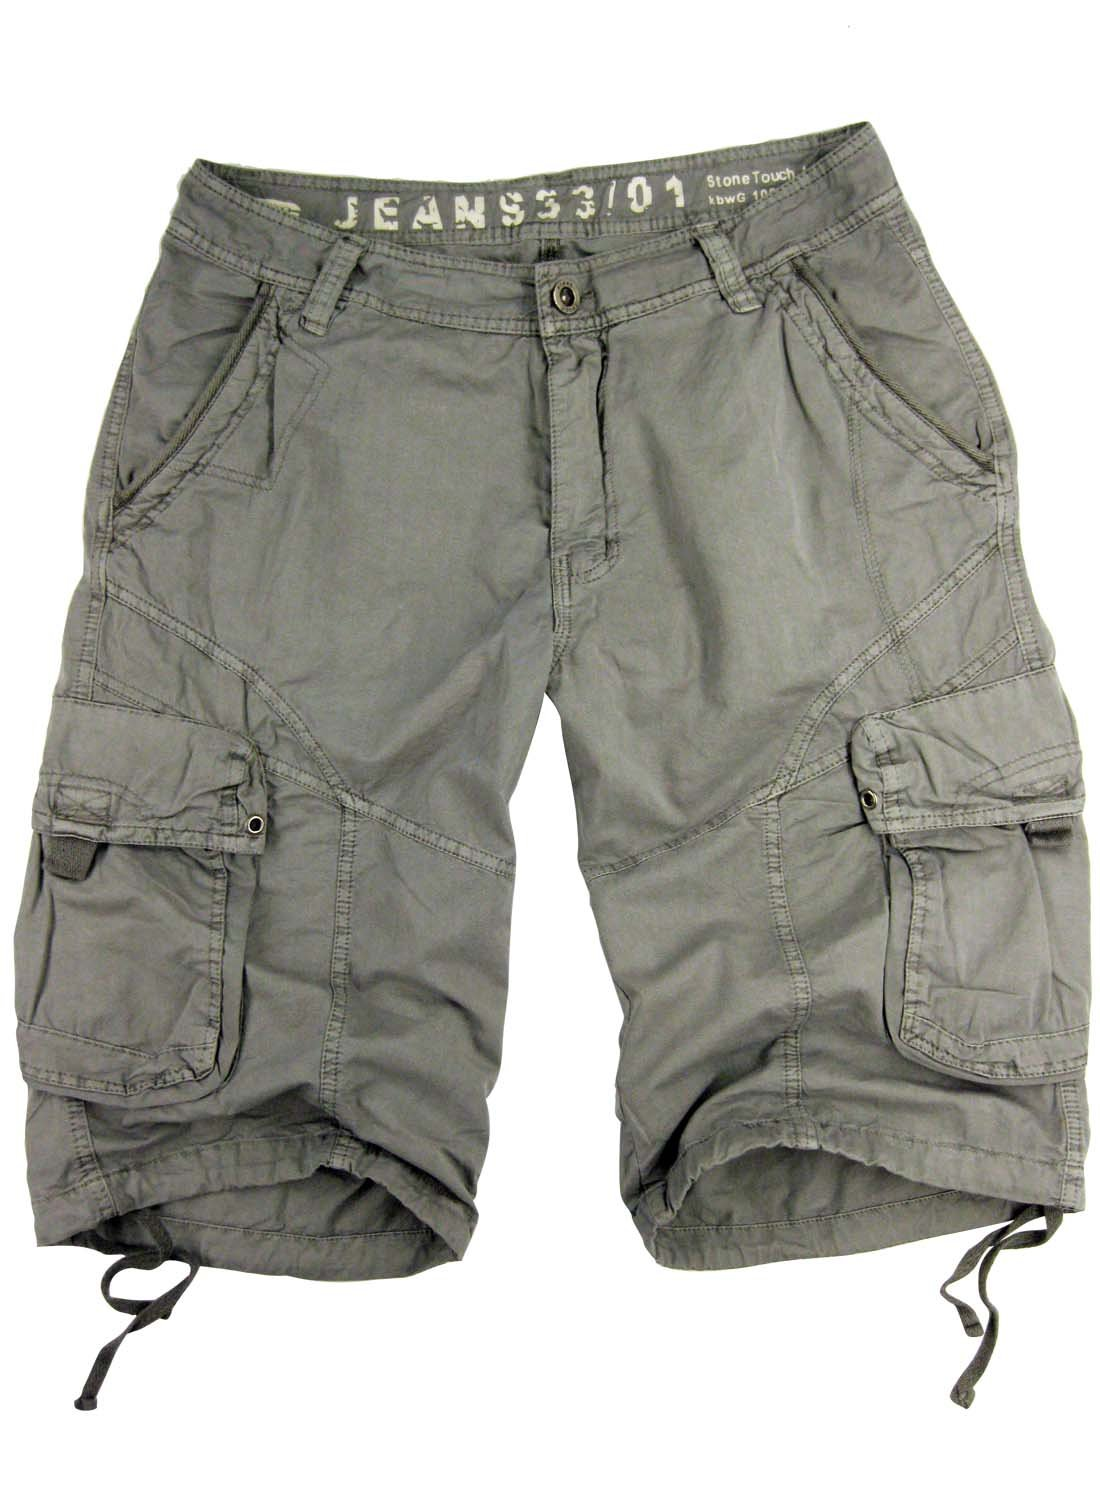 STONE TOUCH Mens Military-Style Light Grey Cargo Shorts #27s Size 50